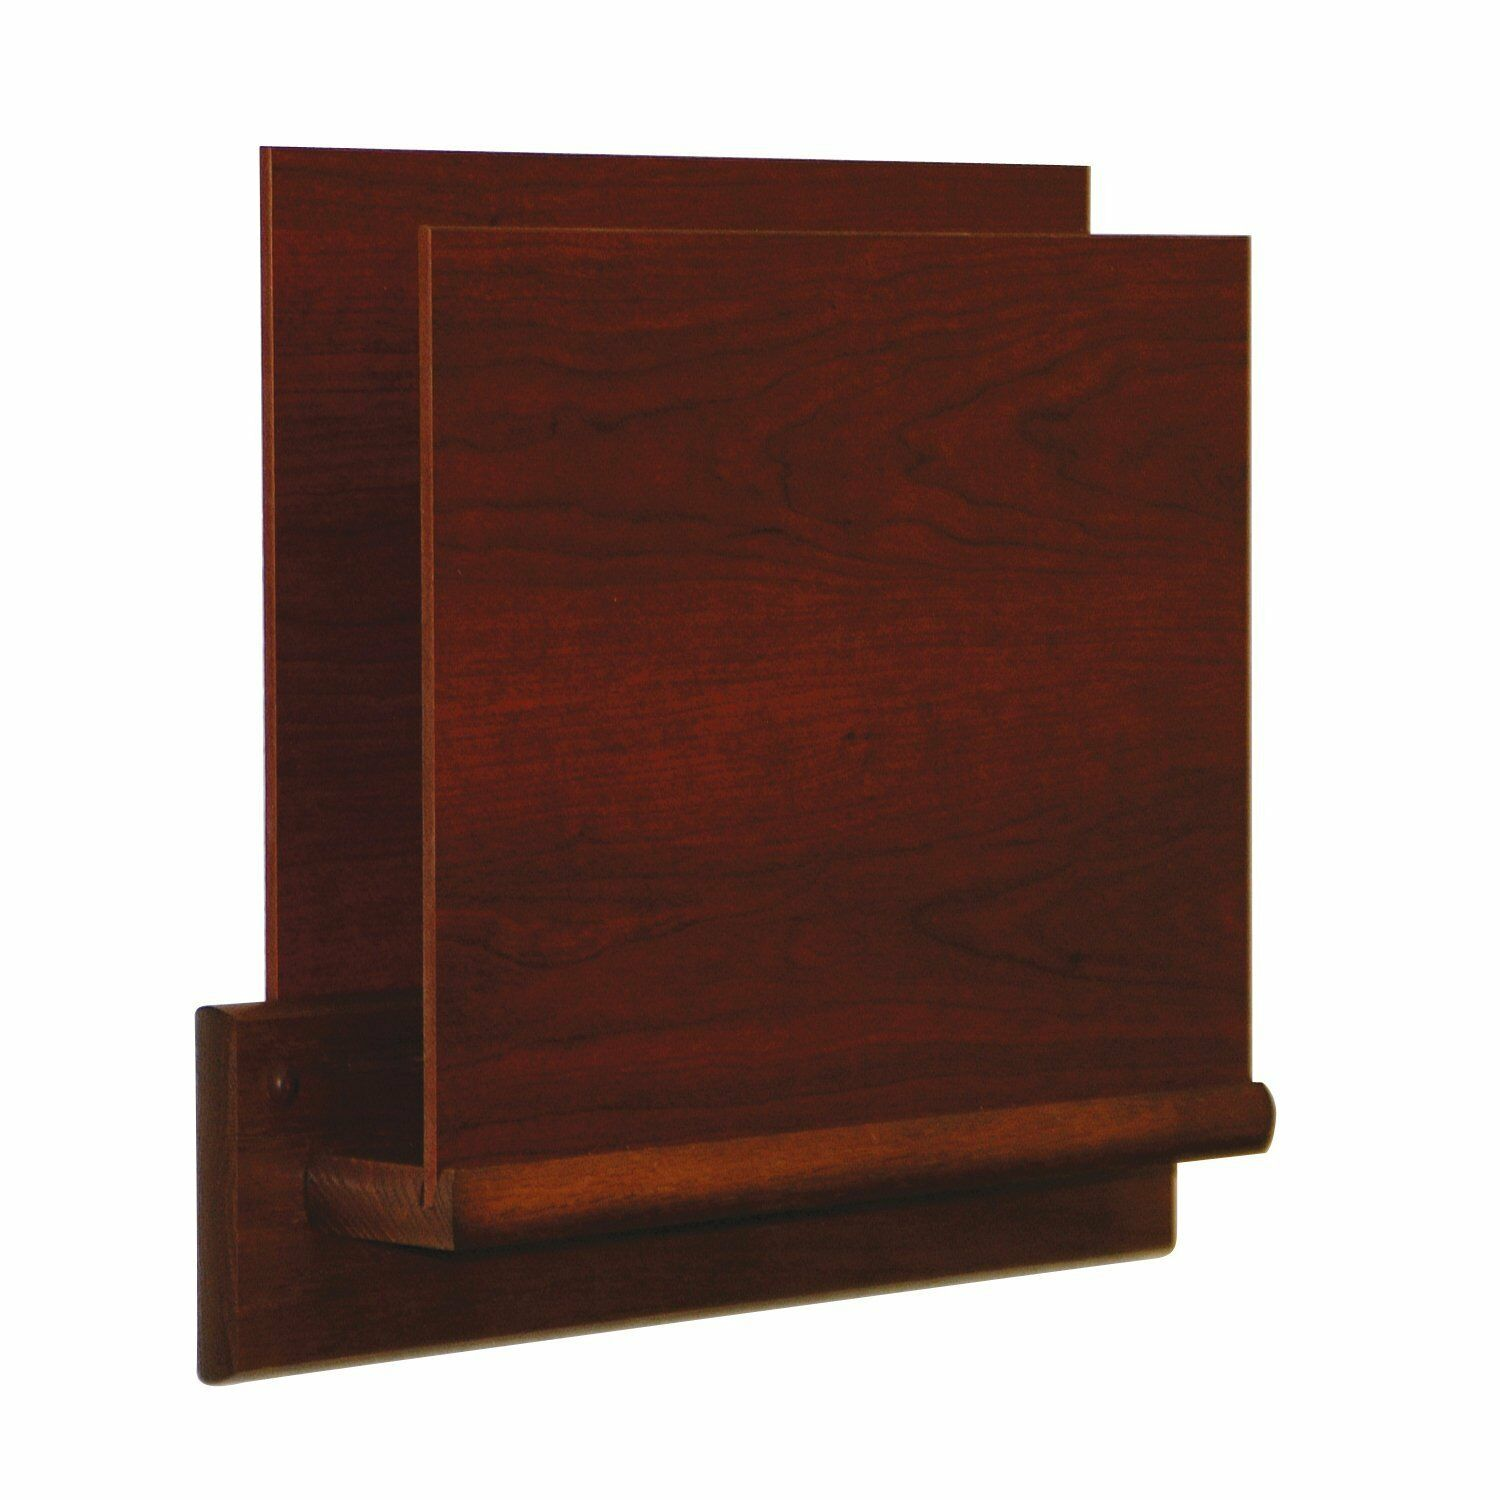 Wooden Mallet Single Open End Letter Size File Holder in Mahogany Square Mount